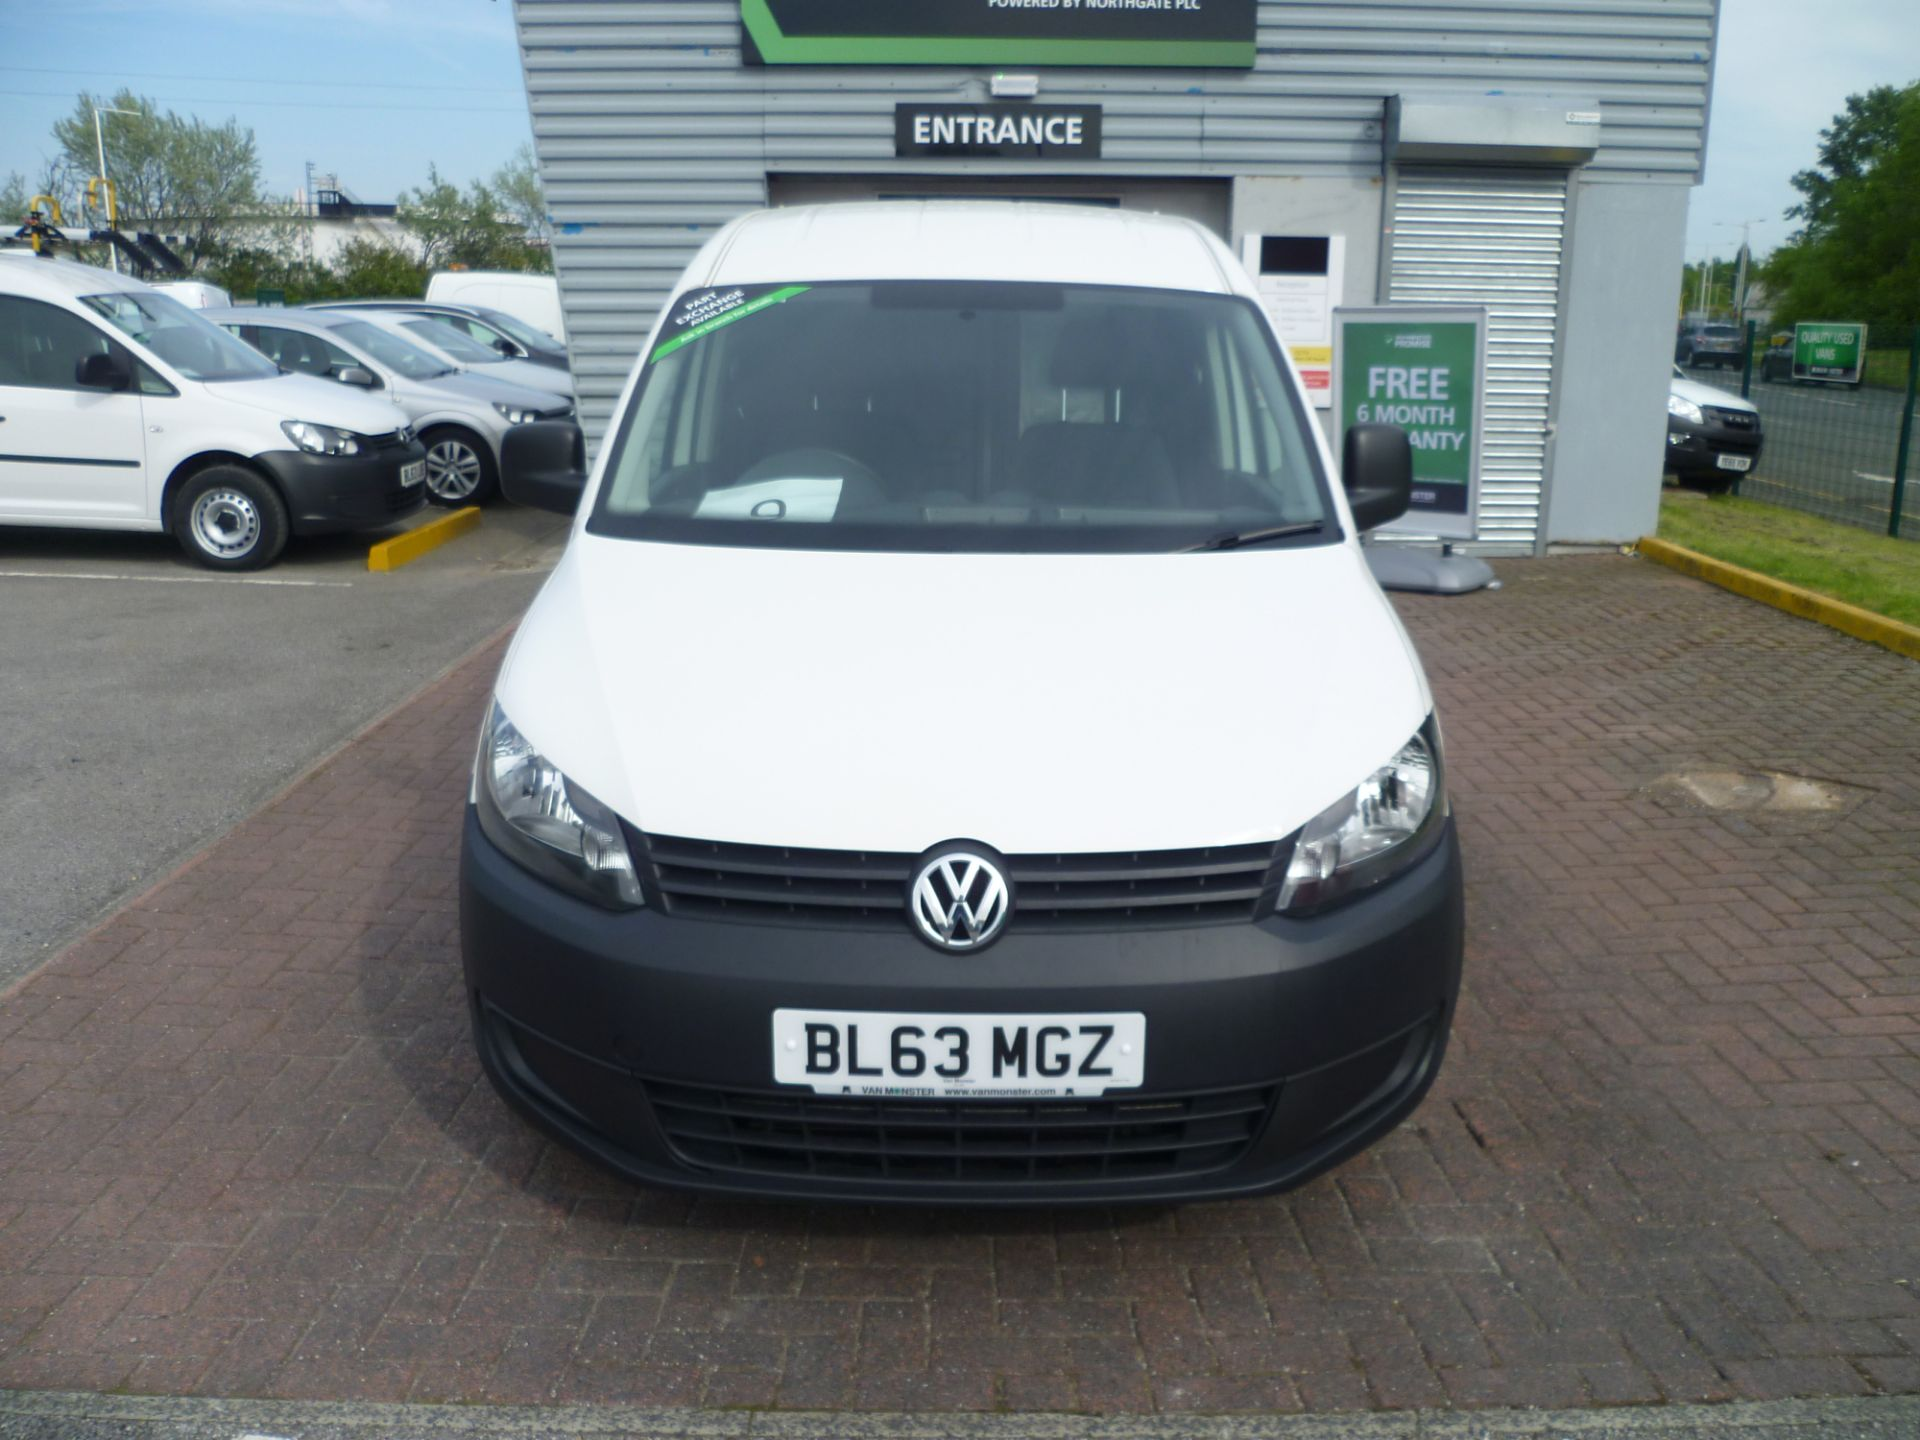 2014 Volkswagen Caddy Maxi 1.6 BLUEMOTION 102PS STARTLINE EURO 5 (BL63MGZ) Image 3